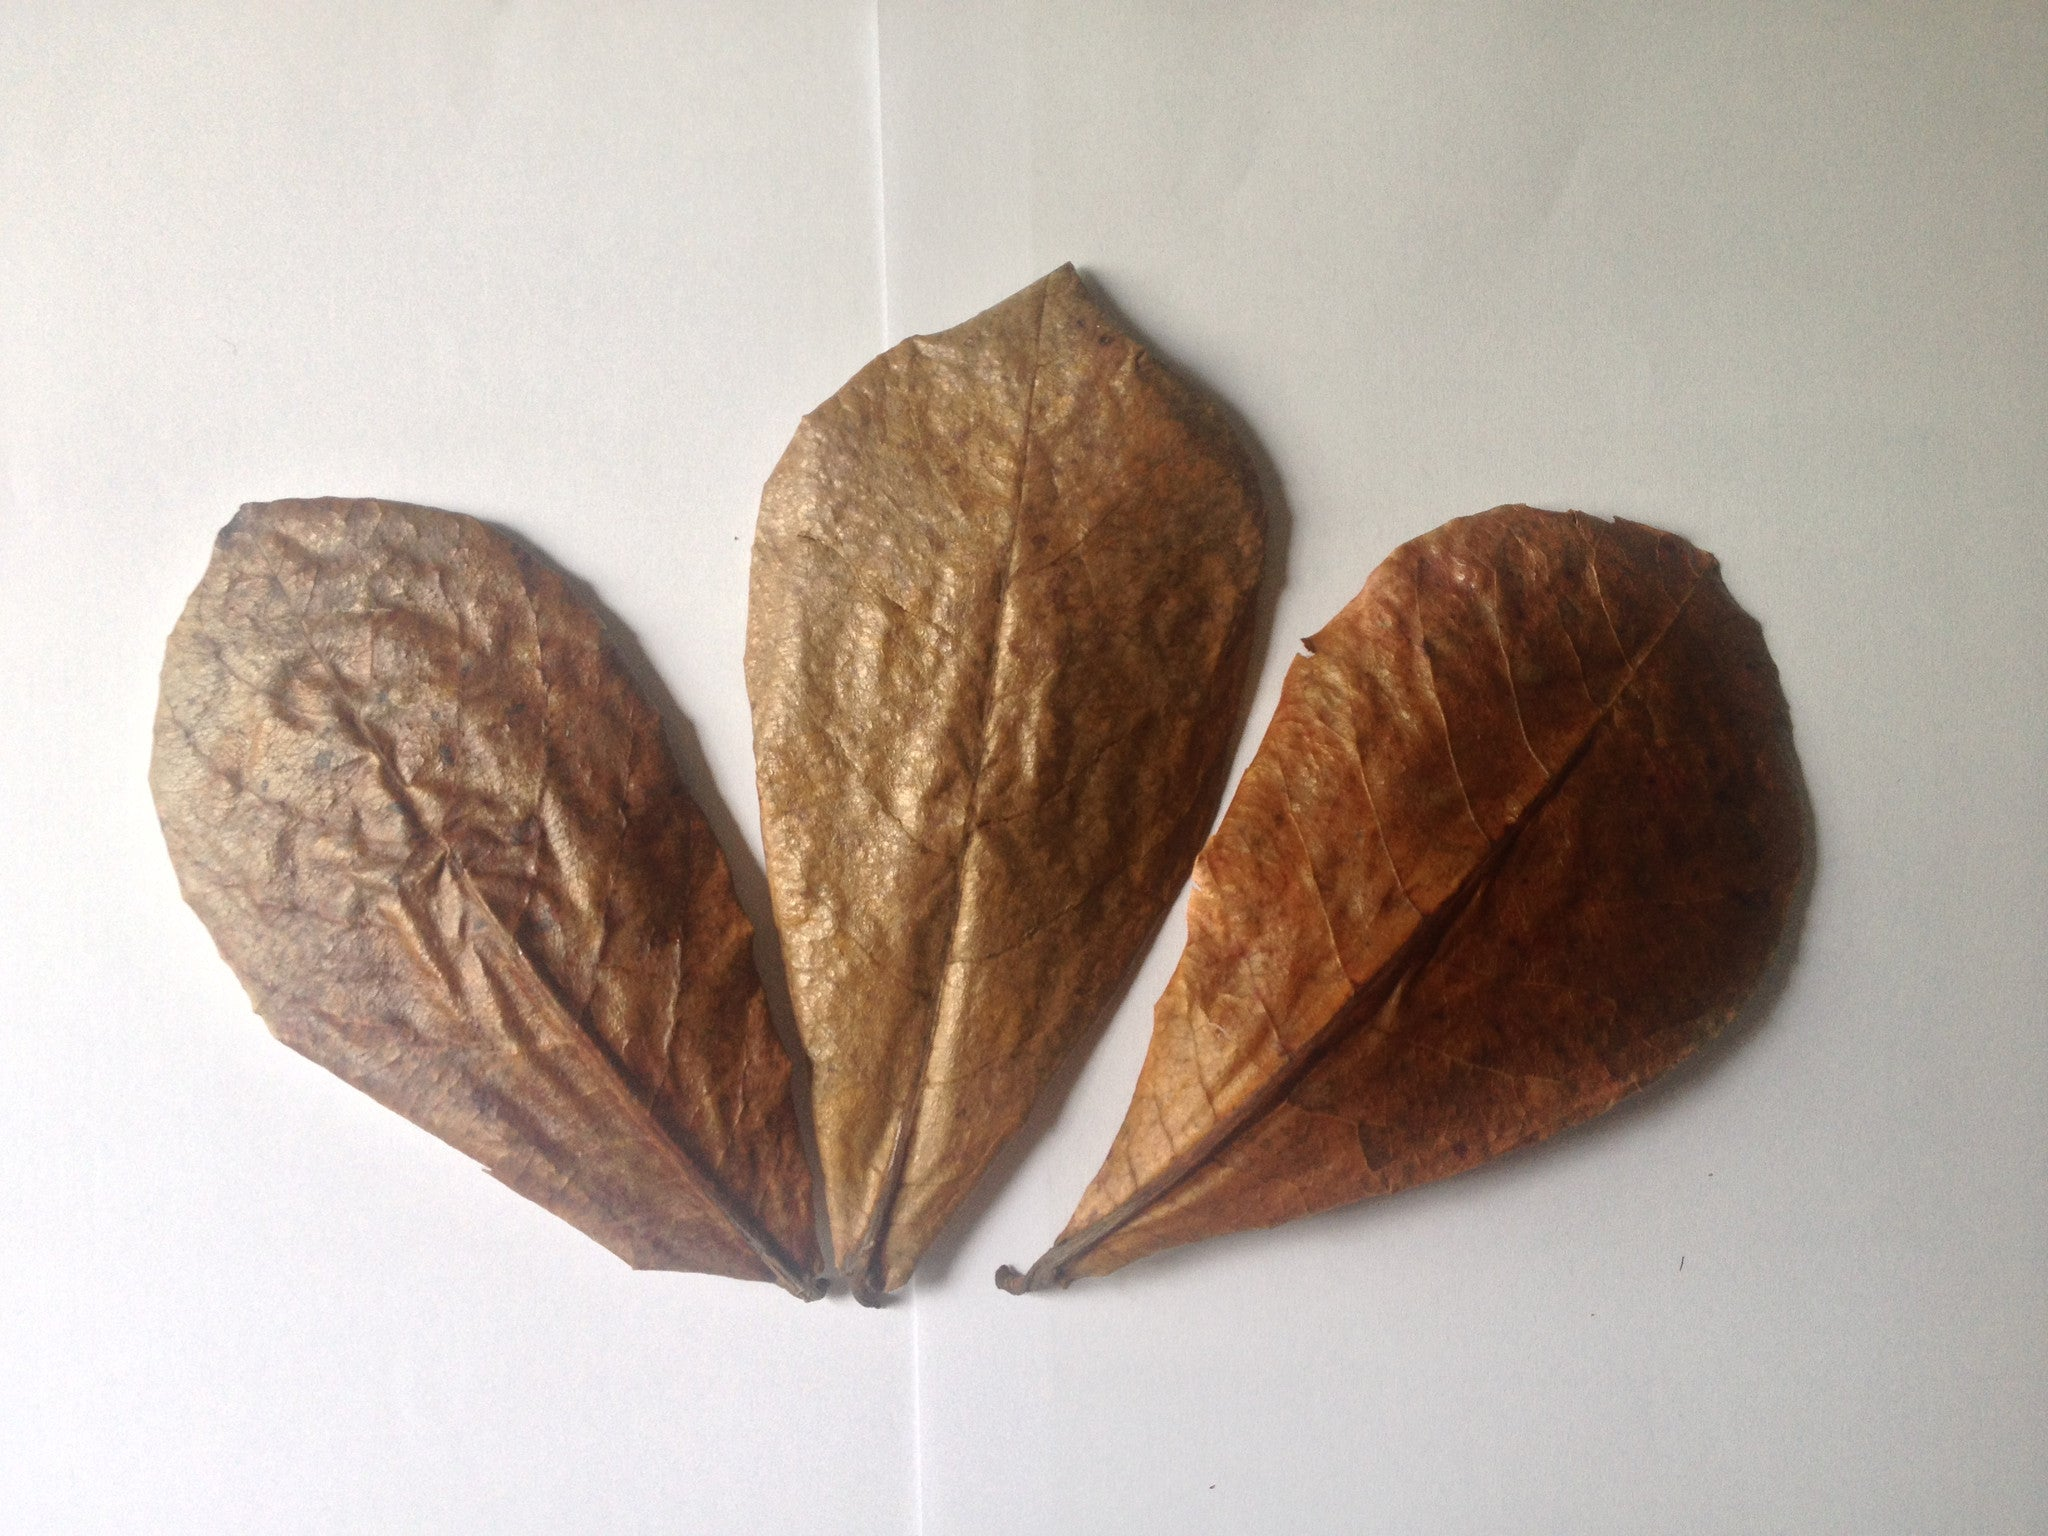 CATAPPA (INDIAN ALMOND) LEAVES